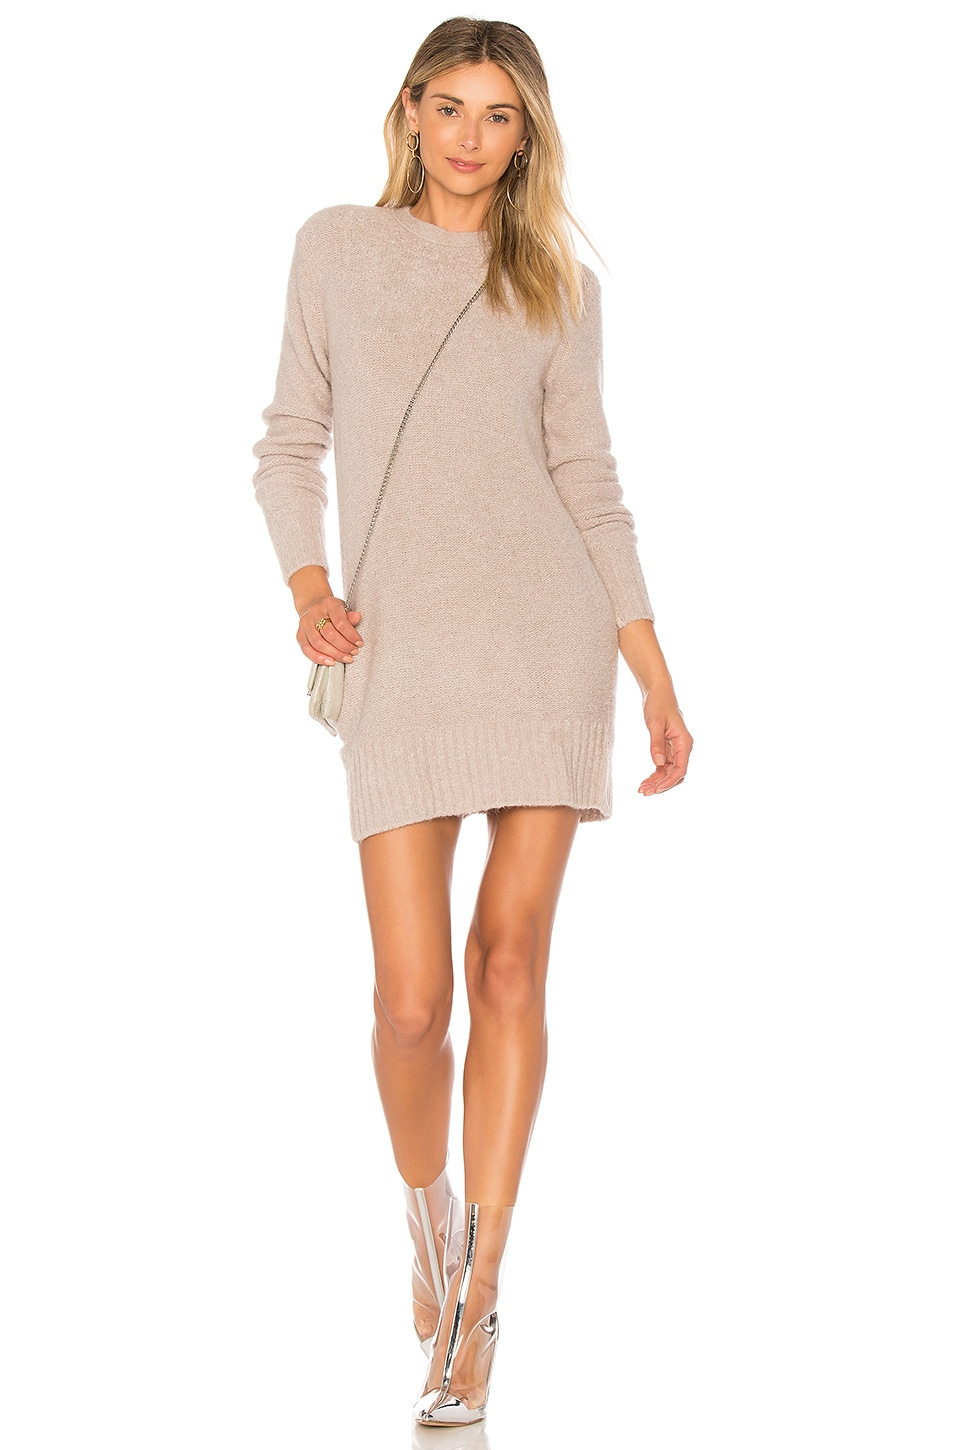 Lovers + Friends Ash Sweater Dress in Light Heather Grey